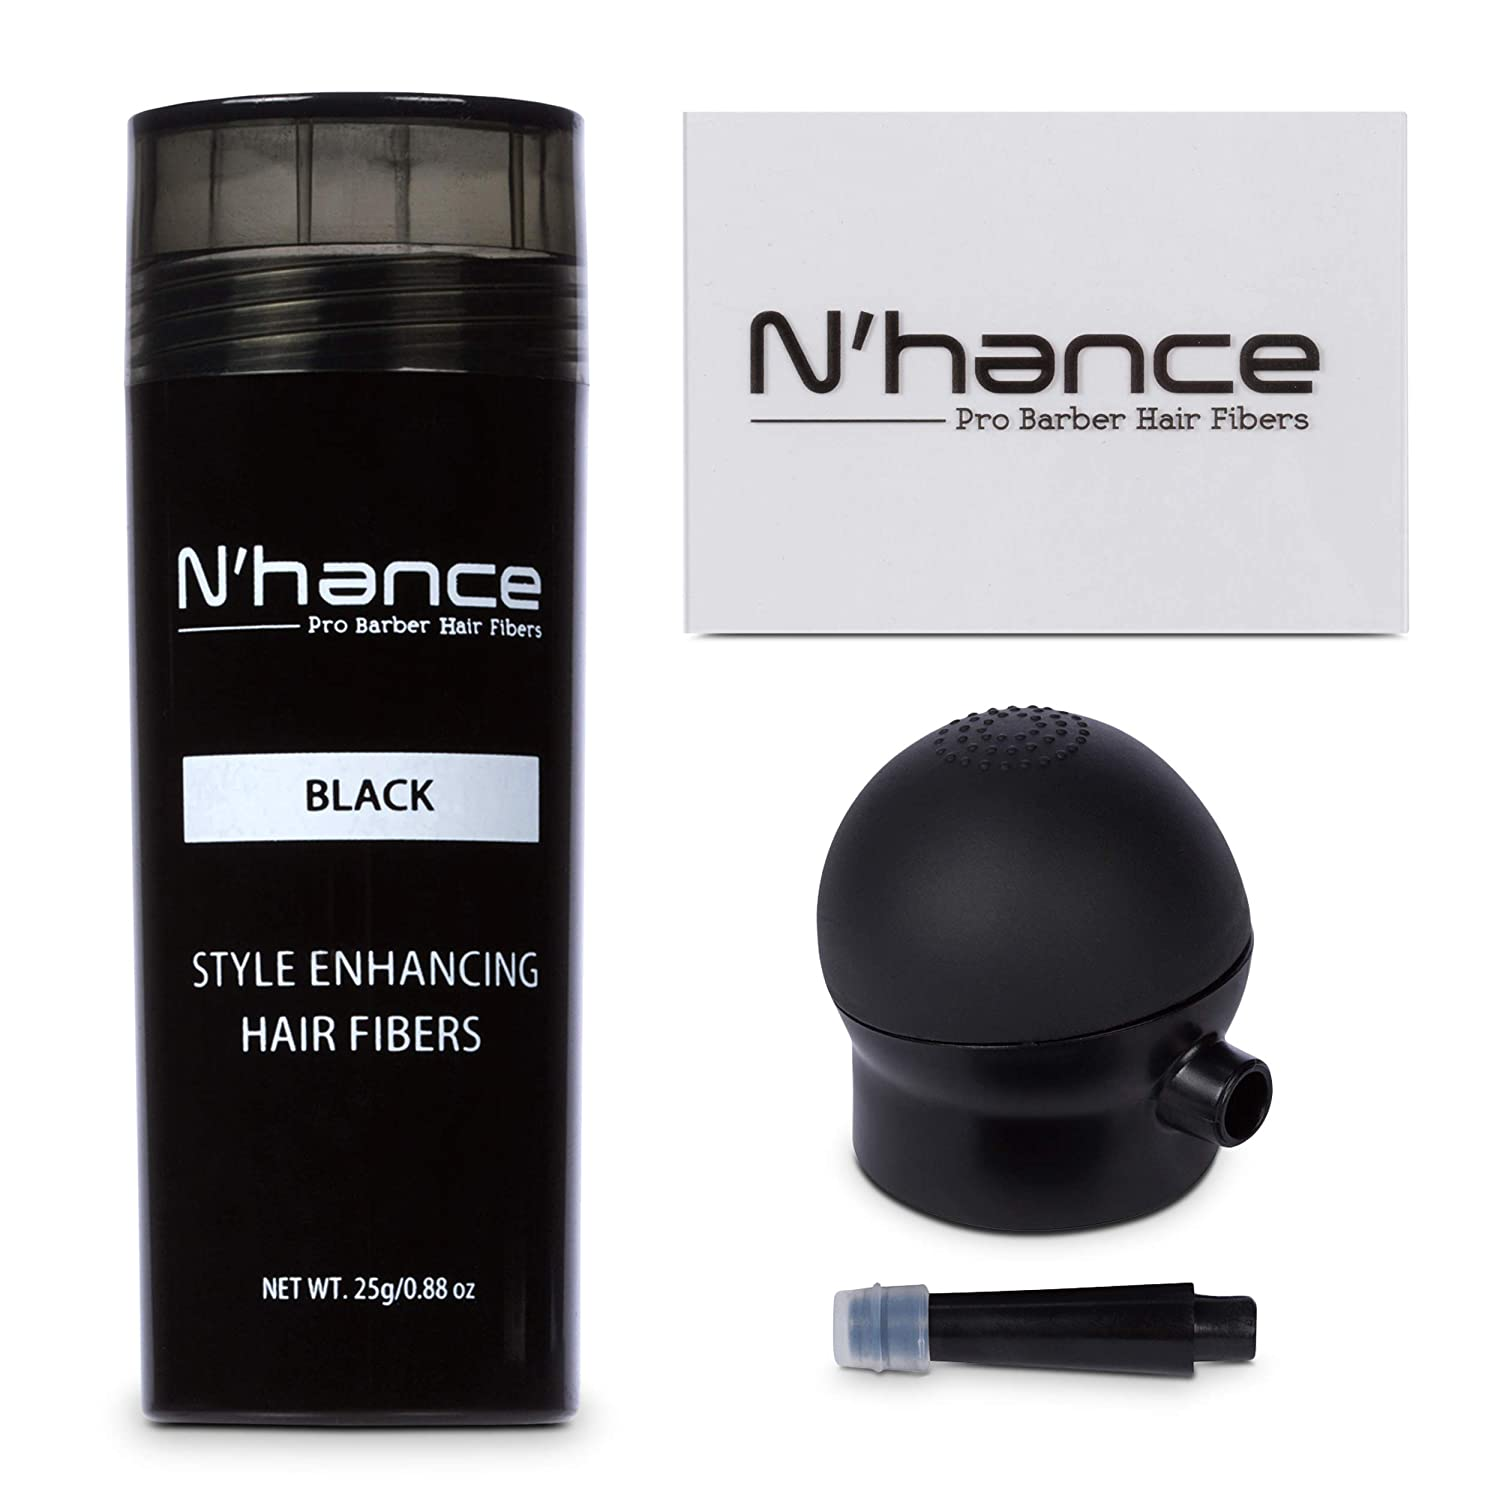 N'Hance Professional Hair Fiber Hold Spray by The Rich Barber